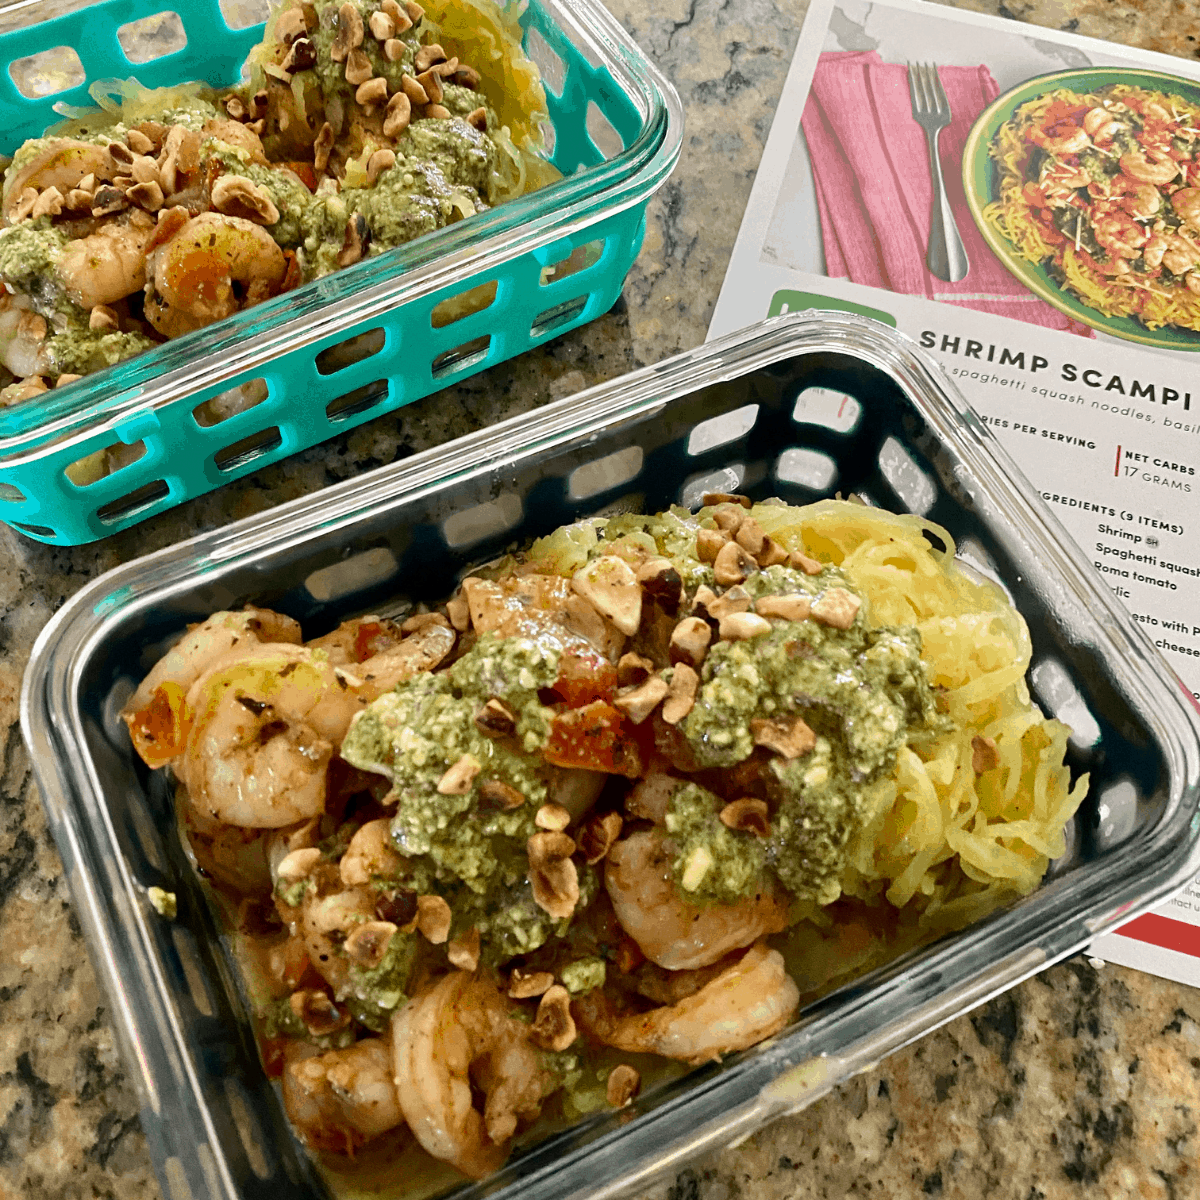 green chef shrimp scampi recipe in a meal prep container.